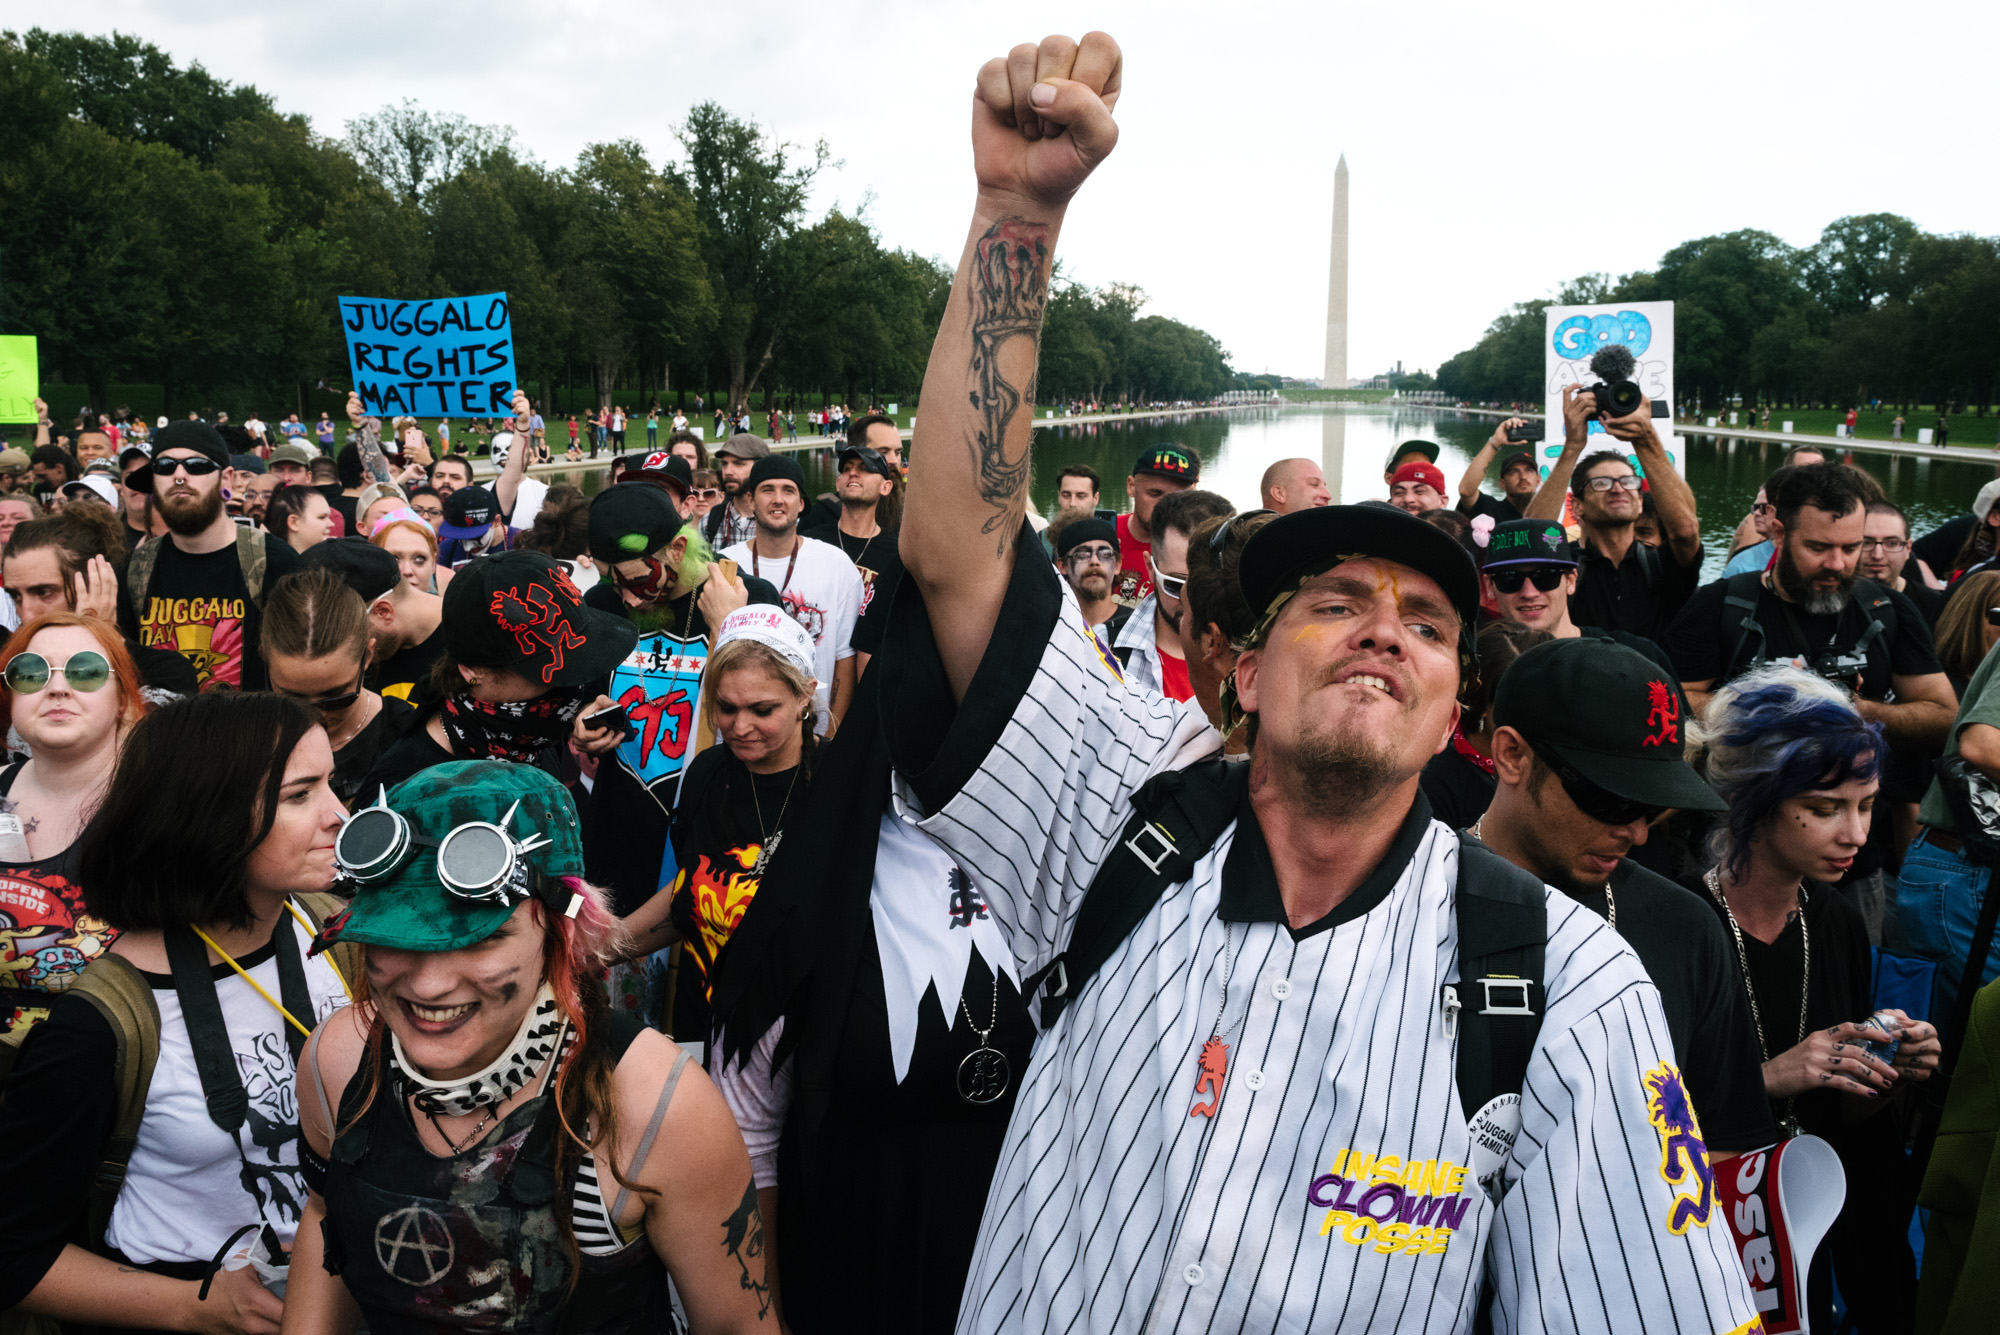 searching for skaters at the million juggalo march jenkem magazine